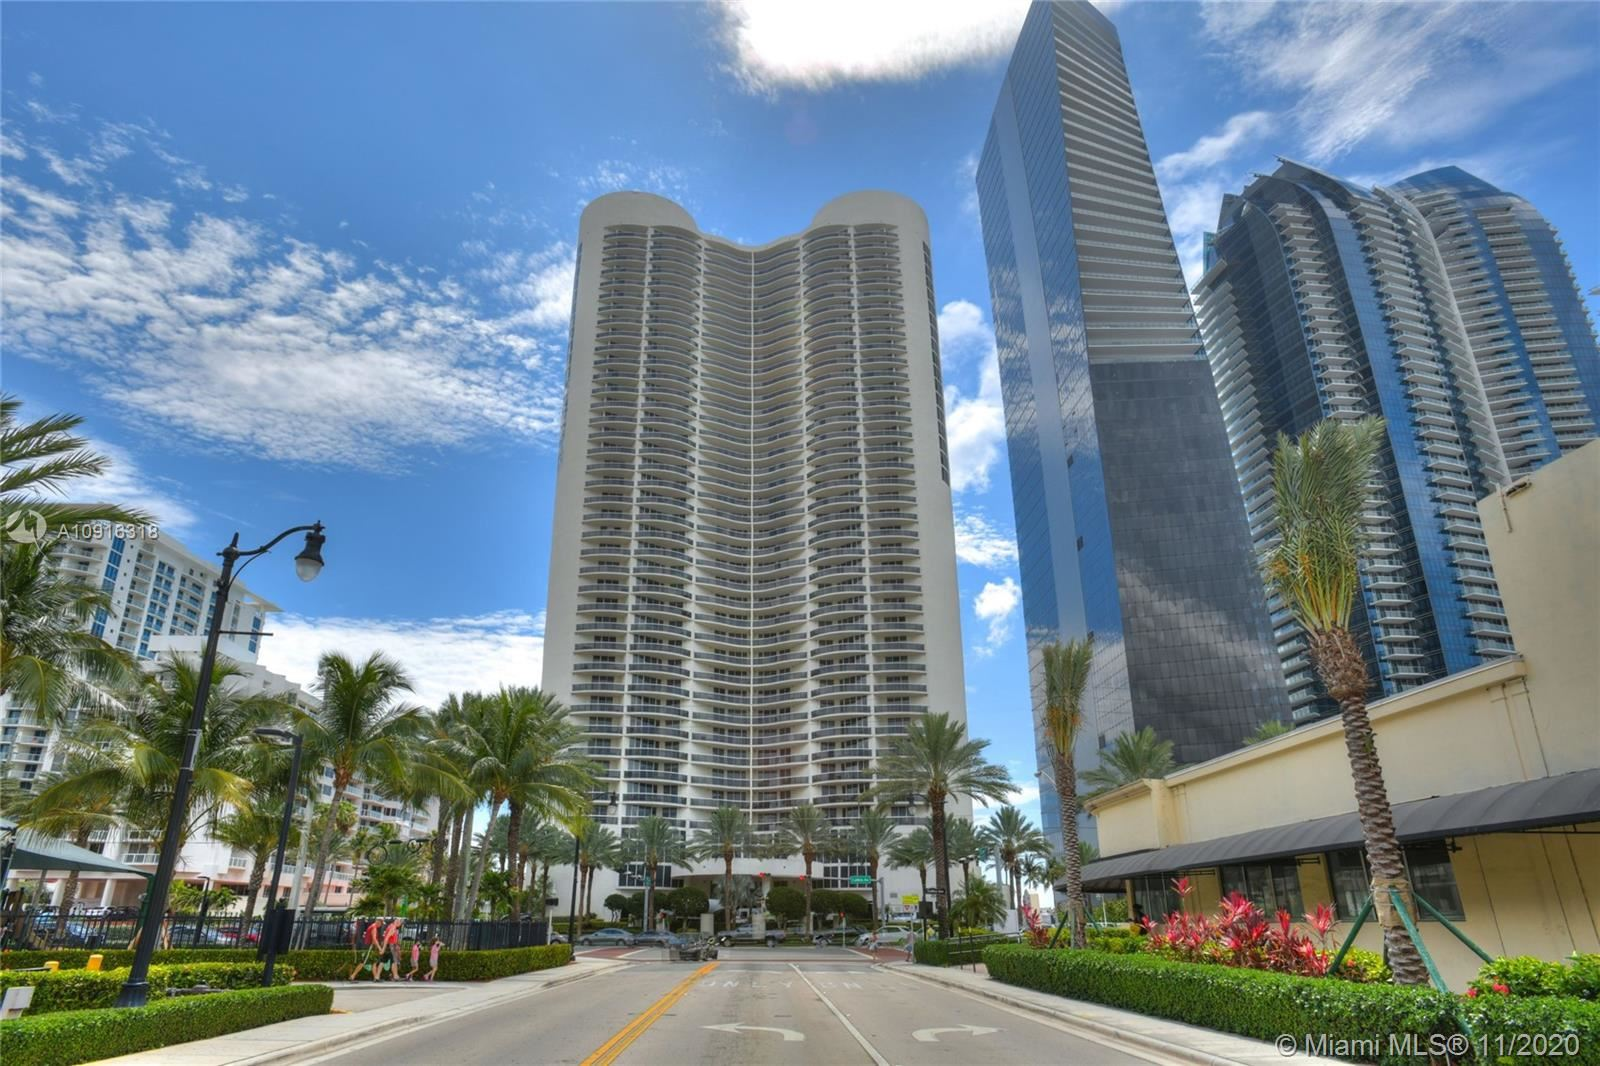 17201 Collins Ave #1609, Sunny Isles, FL 33160 - #: A10916318